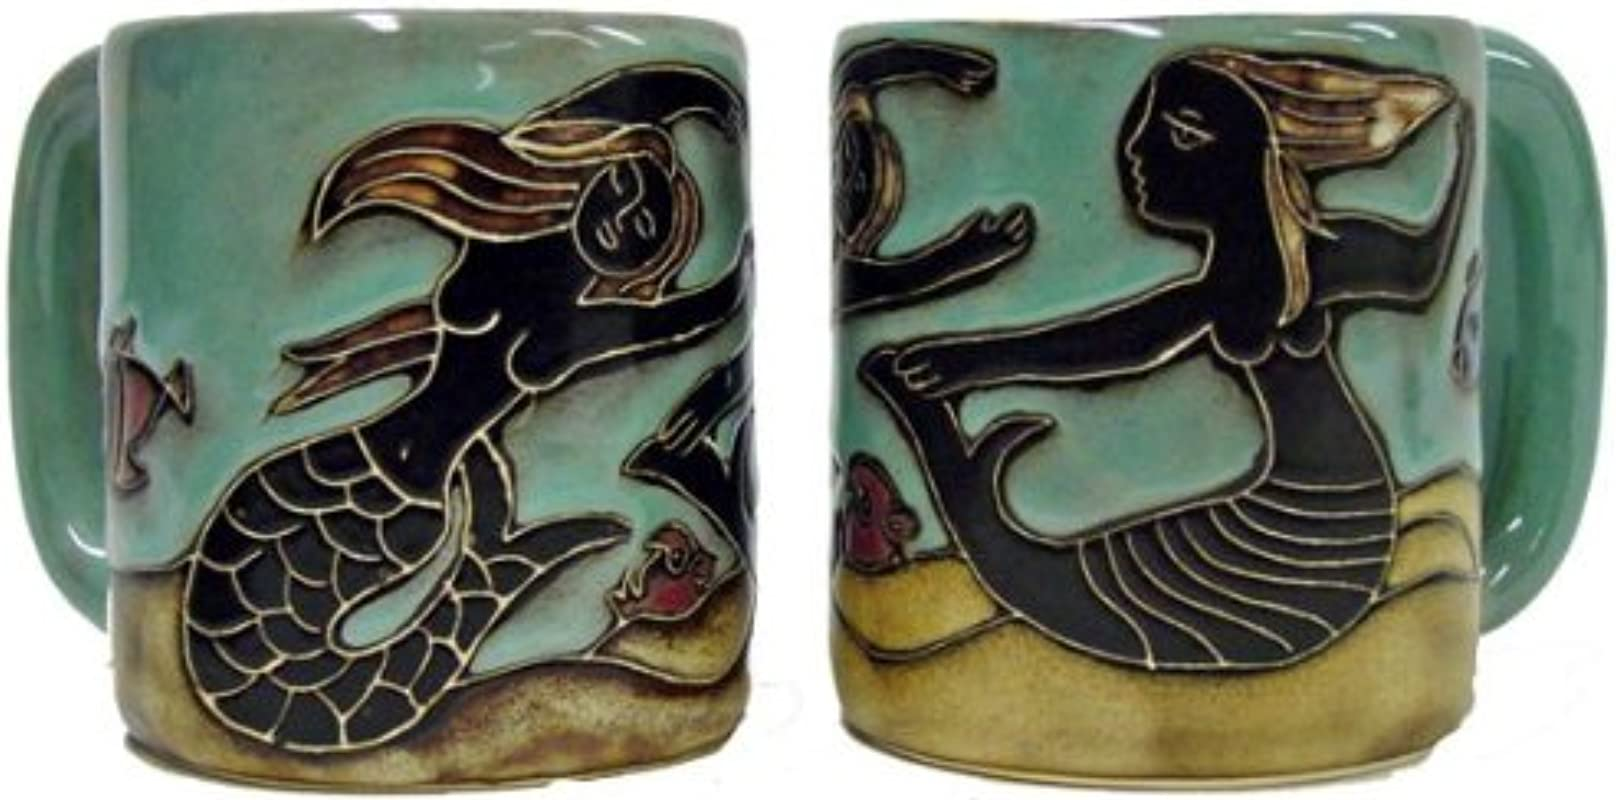 One 1 MARA STONEWARE COLLECTION 16 Ounce Coffee Cup Collectible Dinner Mug Mermaid Design